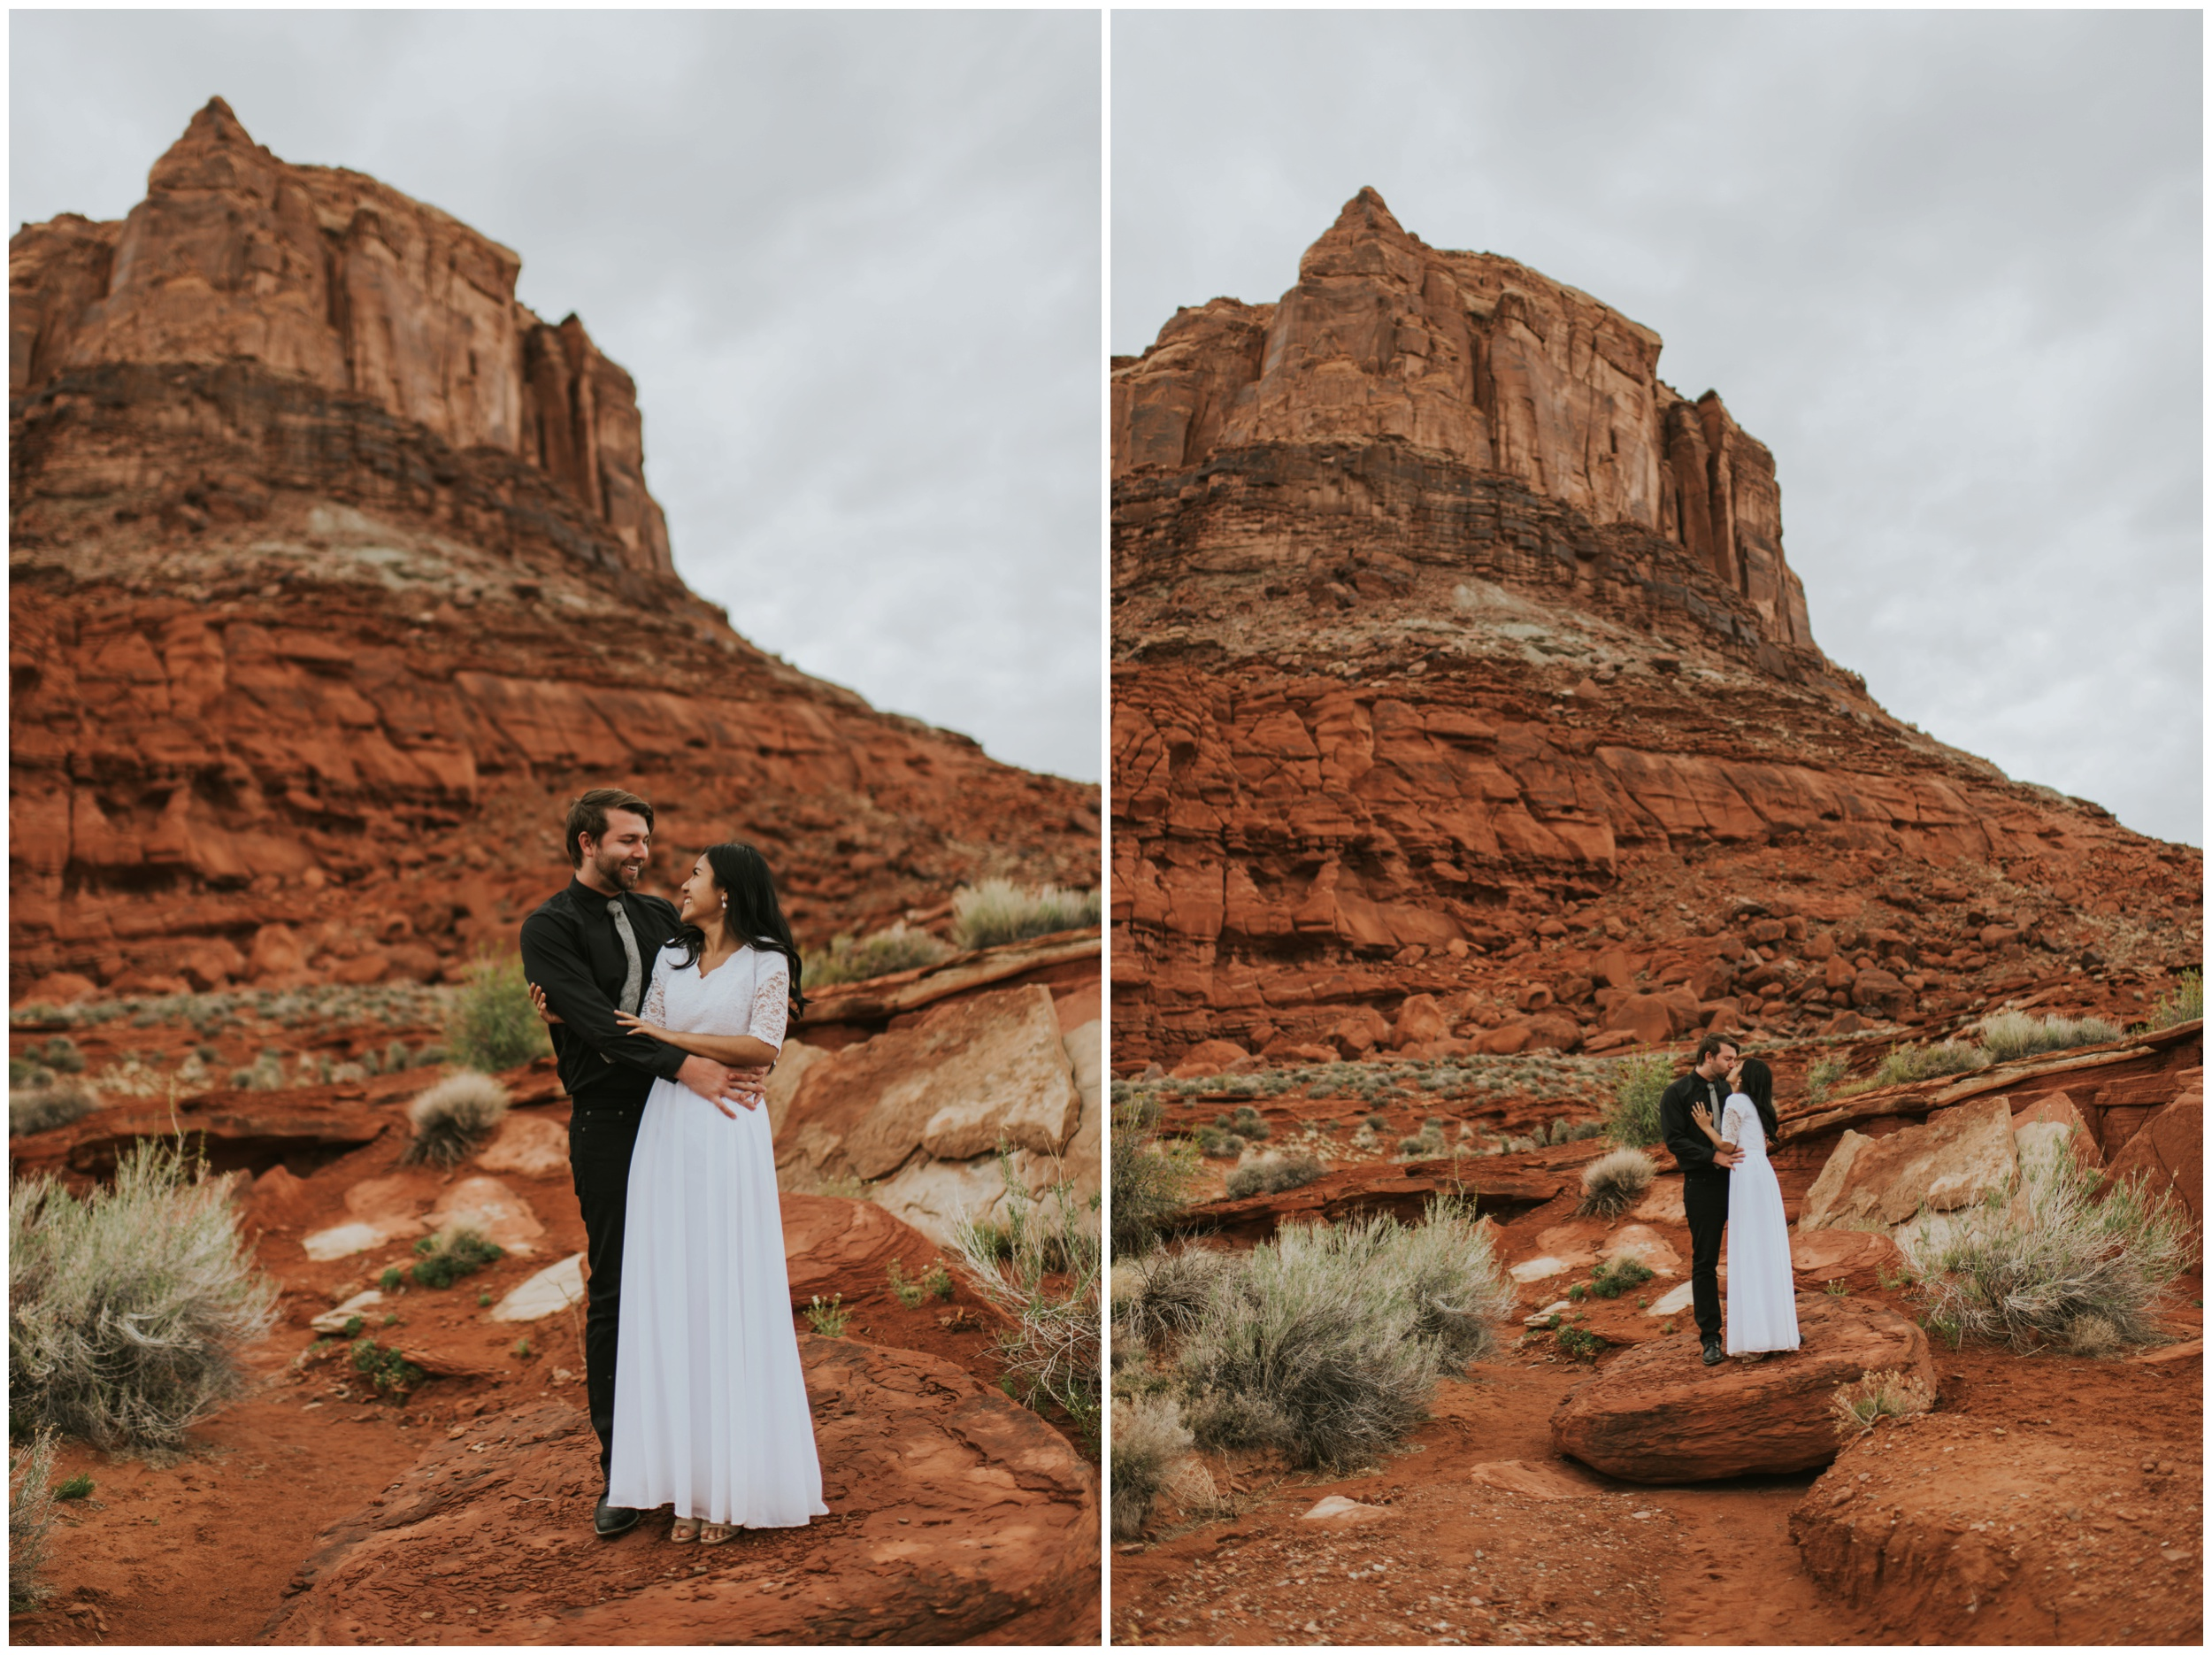 Bride and Groom Portraits at Moab Utah, Destination Elopement | Moab Utah, Photographer www.riversandroadsphotography.com